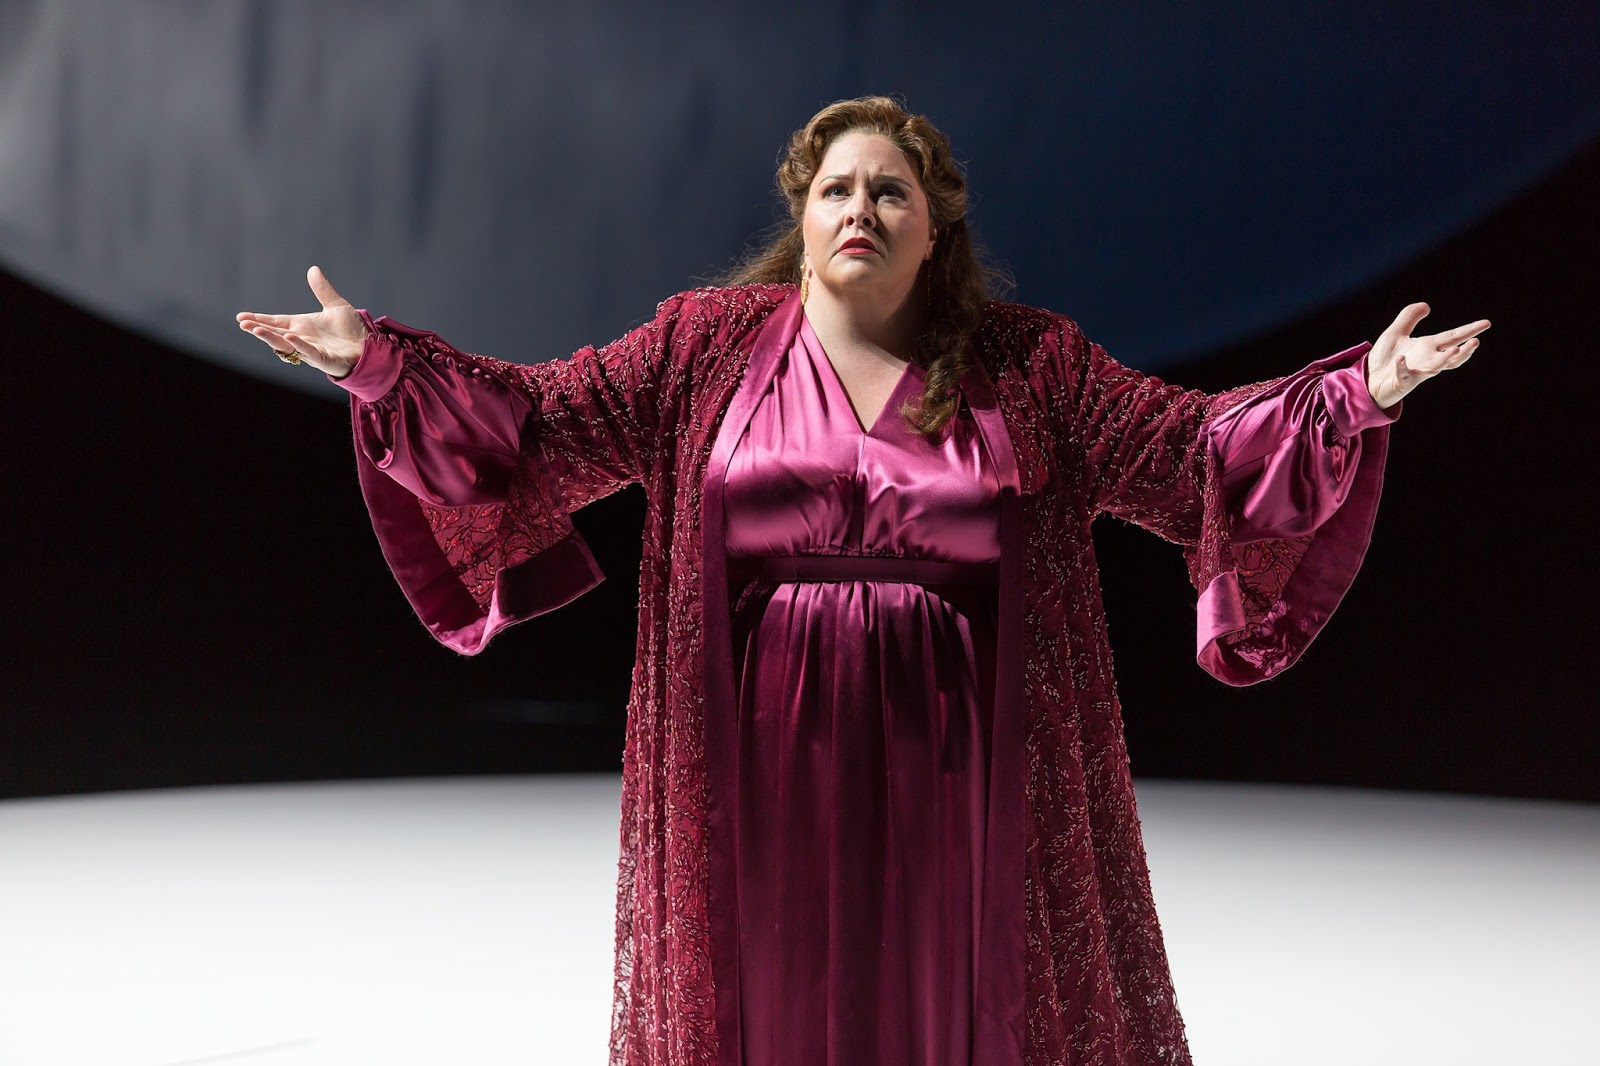 IN PERFORMANCE: soprano ANGELA MEADE in the title rôle in Washington National Opera's production of Georg Friedrich Händel's ALCINA, November 2017 [Photo by Scott Suchman, © by Washington National Opera]